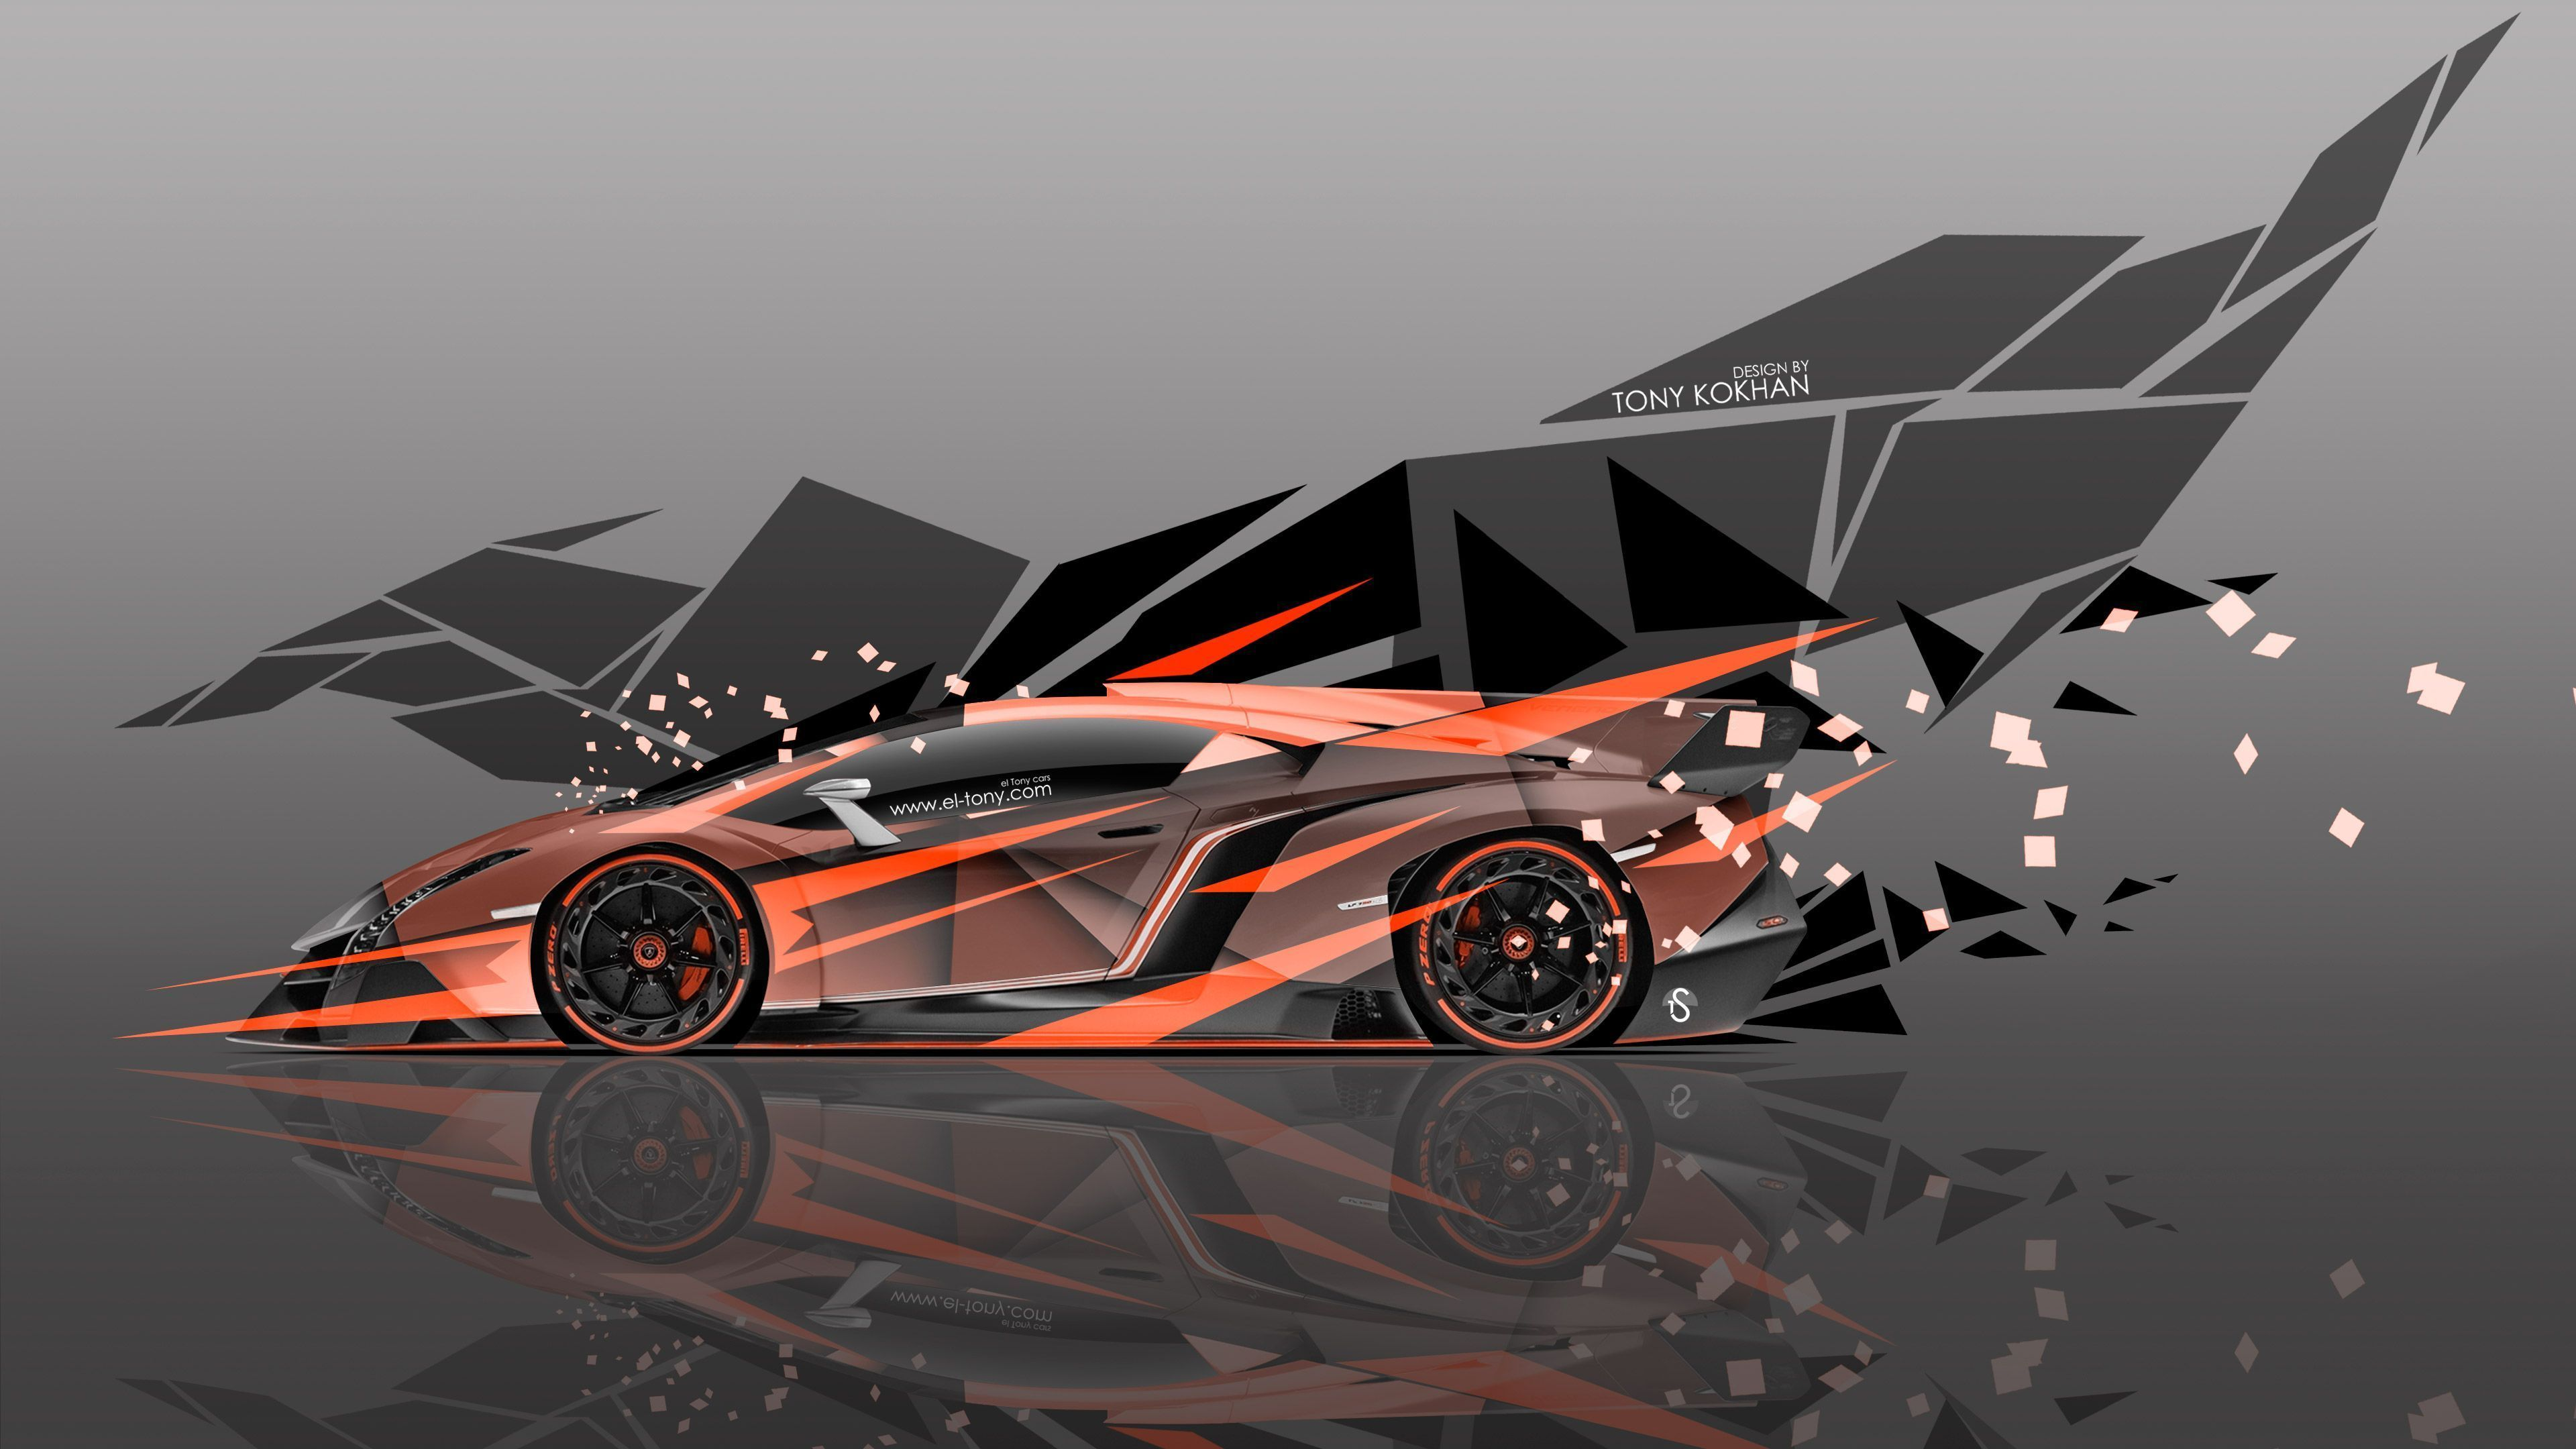 Attirant 4K Wallpapers Lamborghini Aventador Side Aerography Car 2014 « El Tony